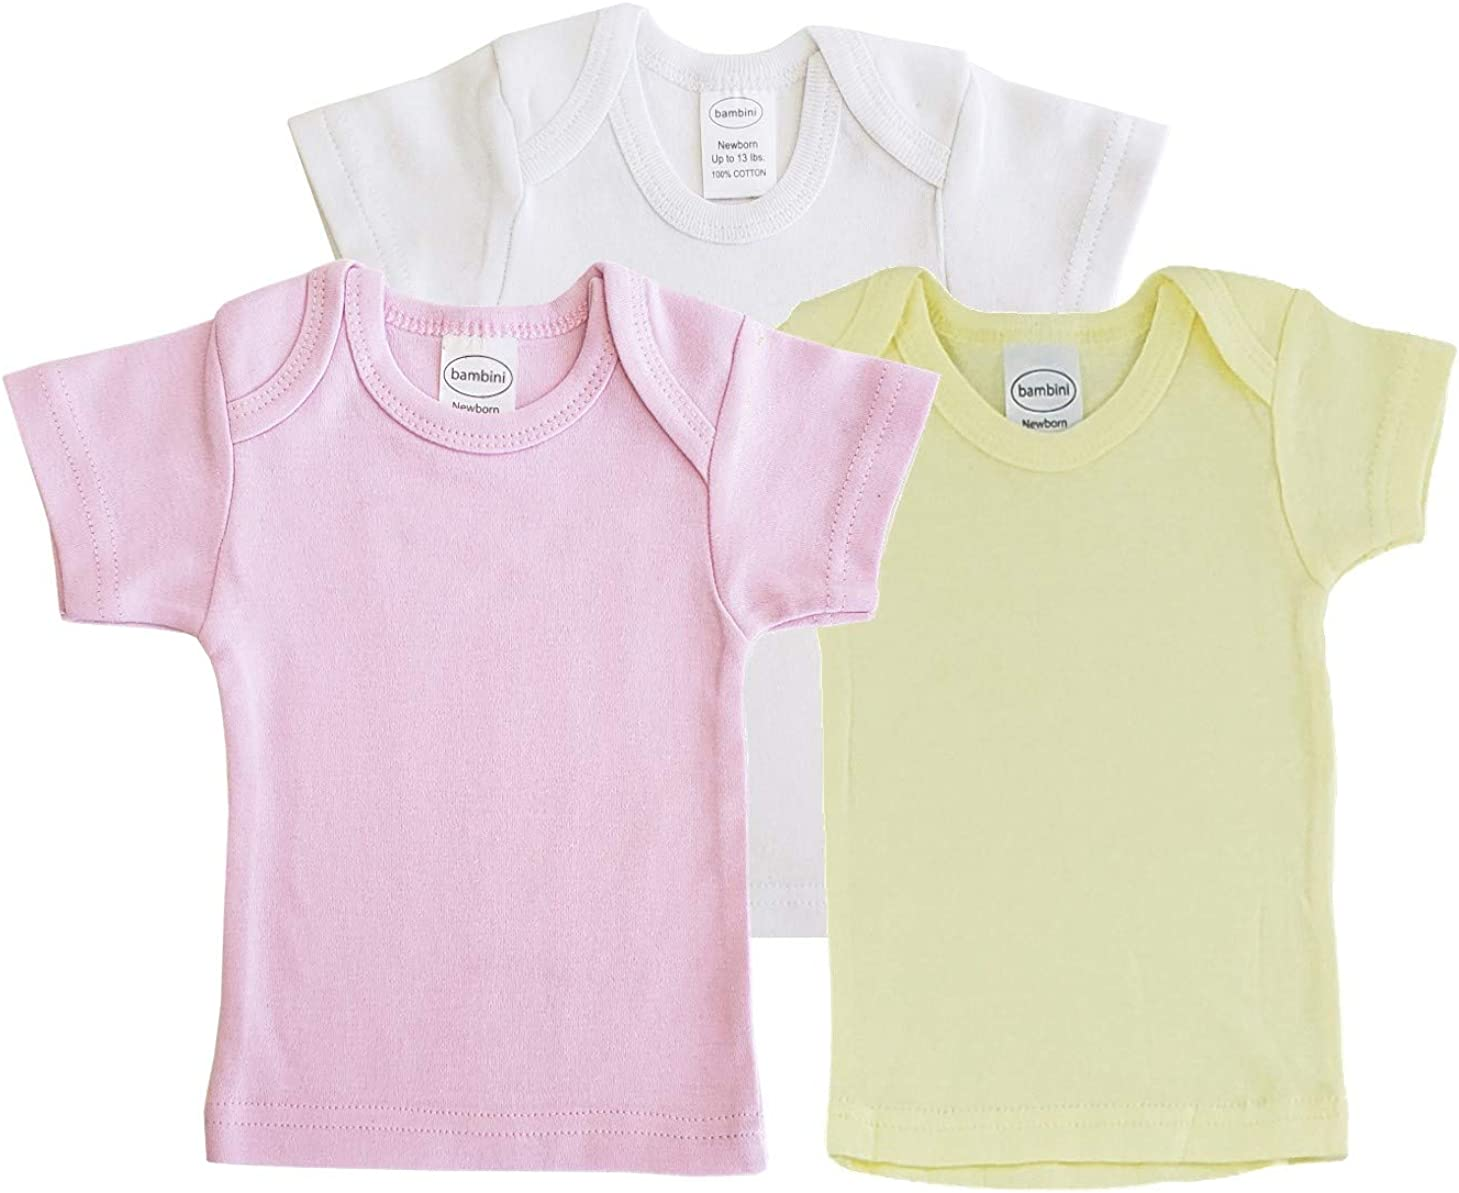 Unisex Baby Short & Long Sleeve Tee Shirts, 100% Cotton for Variety Packs of 3-Pack/ 6-Pack (Large (18-24 Months / 27-34 lbs.), Short-Sleeve_3-Pack_Pastel_for Girl)